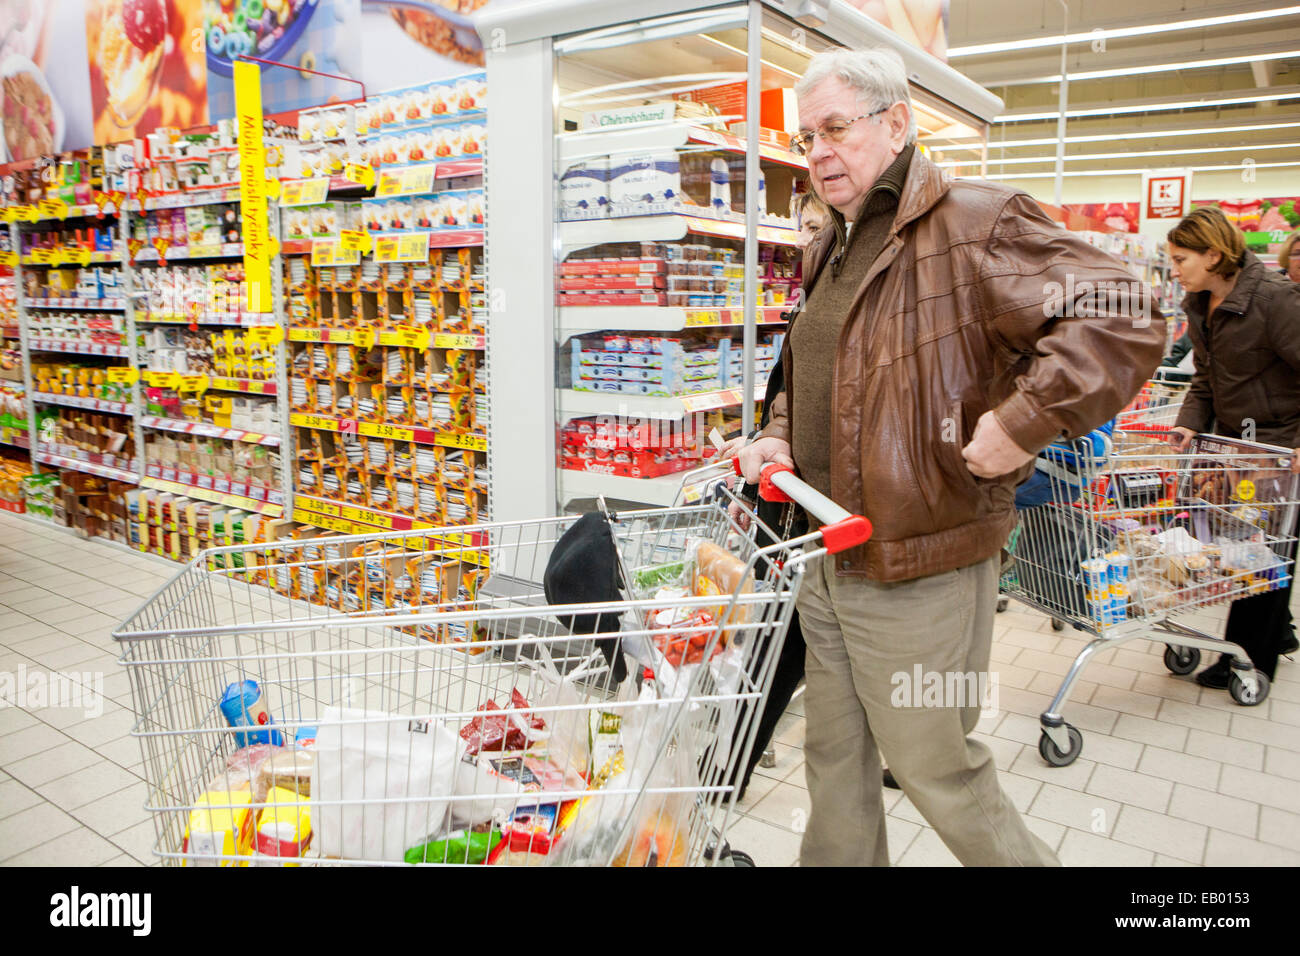 People shopping, Senior man, Supermarket trolley, Prague, Czech Republic Europe - Stock Image